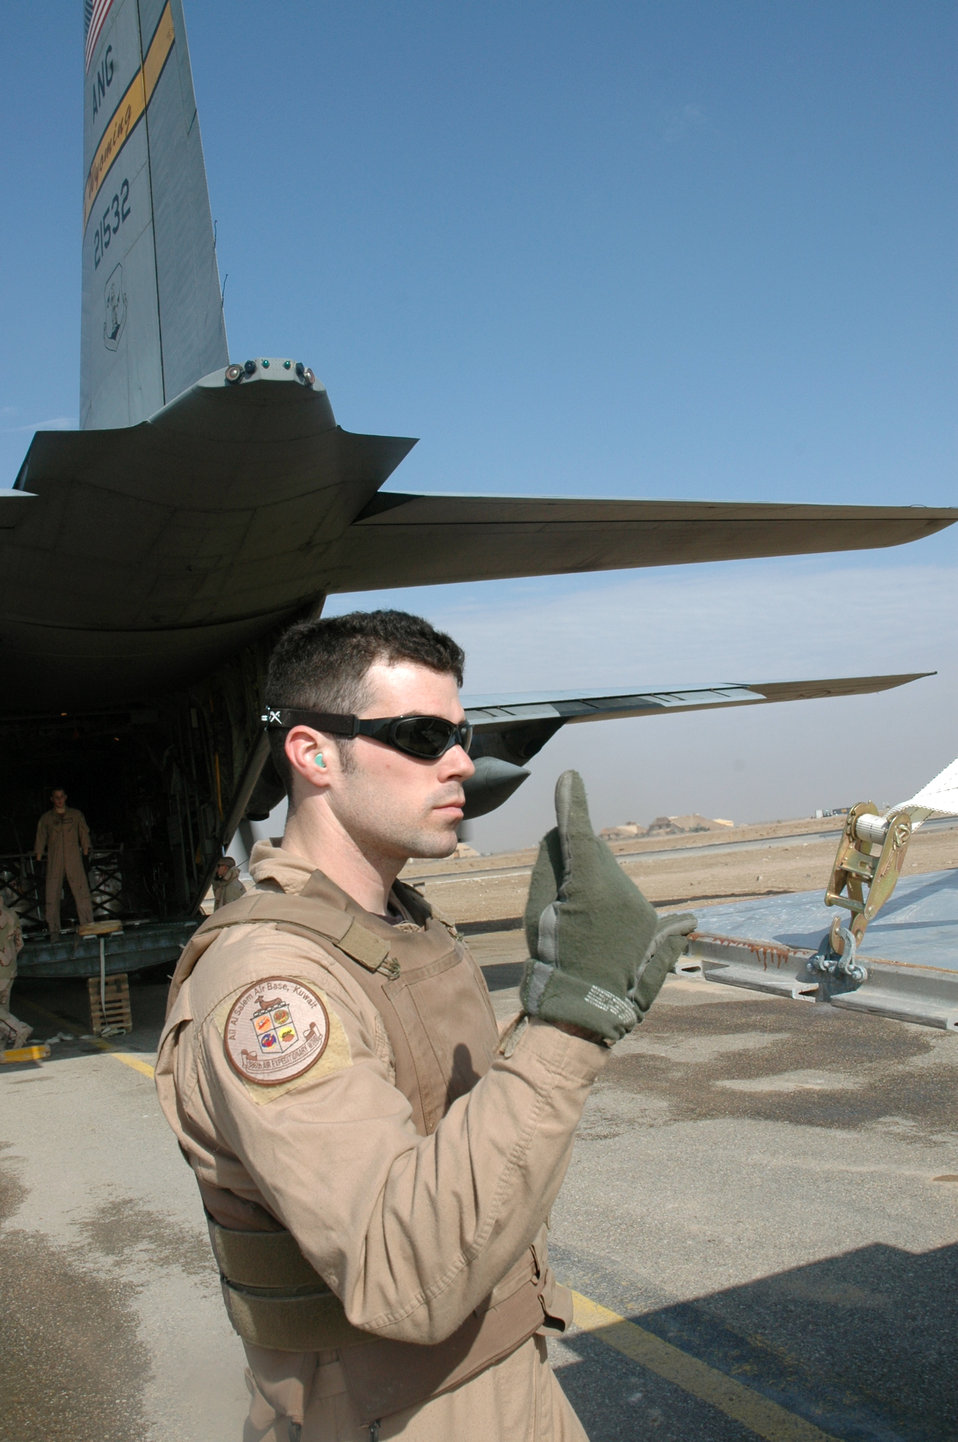 C-130 airlift reduces ground convoy operations